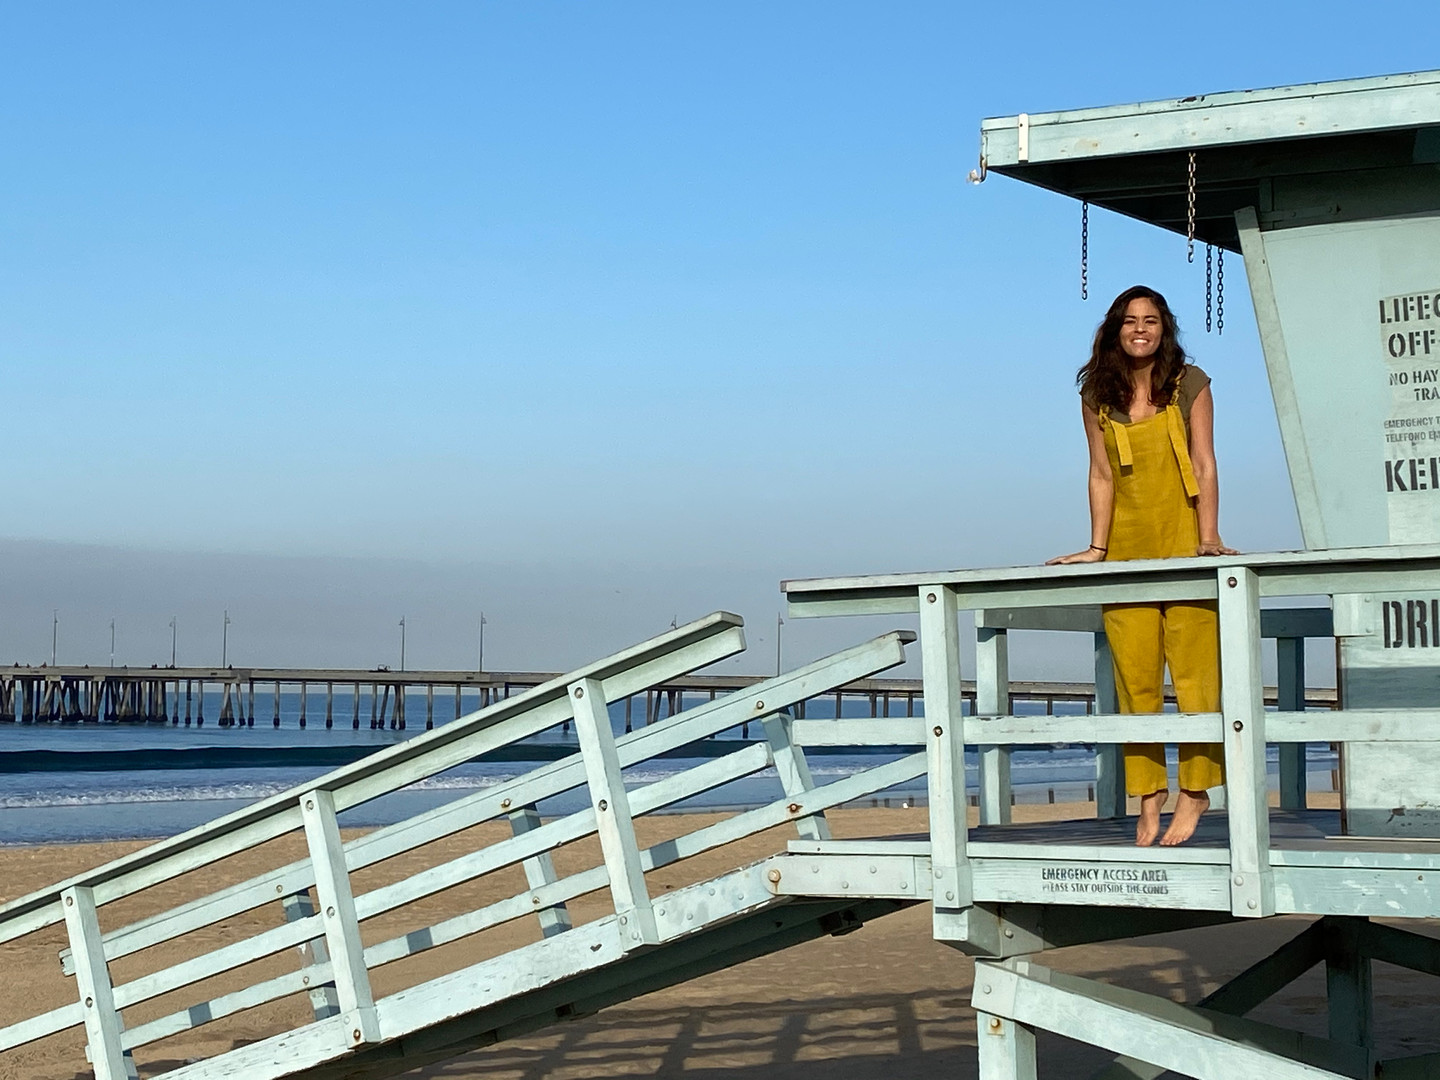 hanging out in yellow jumsuit on a life guard stand at the beach